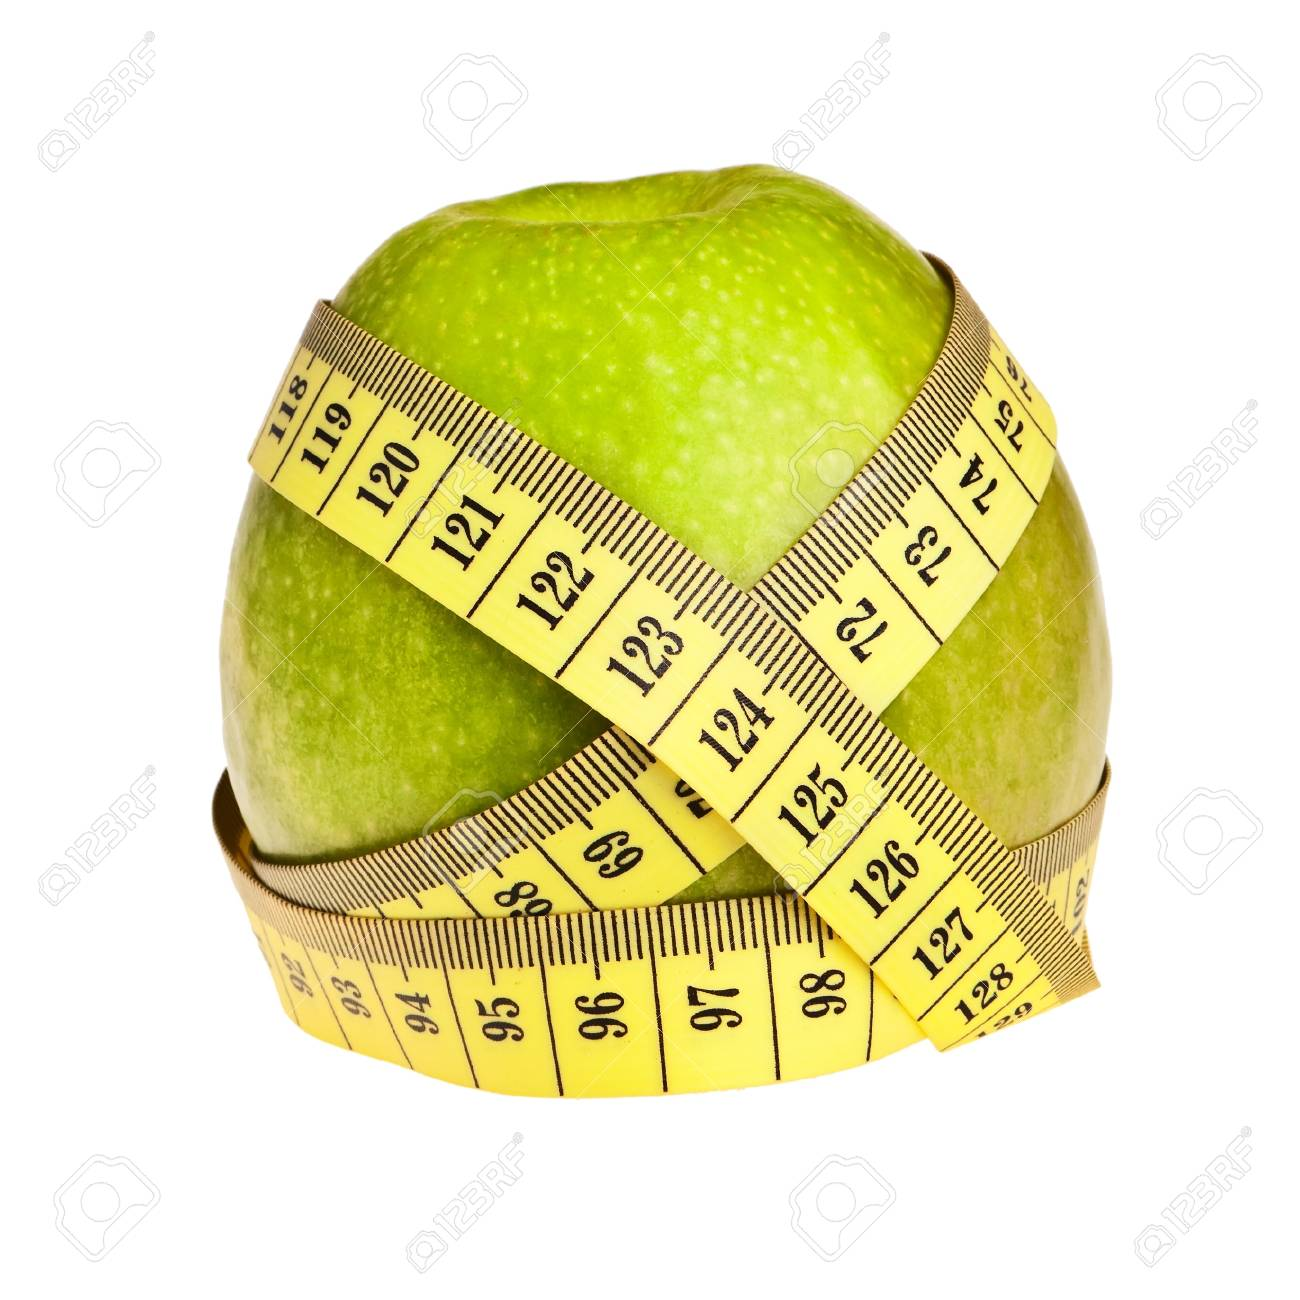 Green apple wrapped with yellow measurement tape over white background. Stock Photo - 8792422